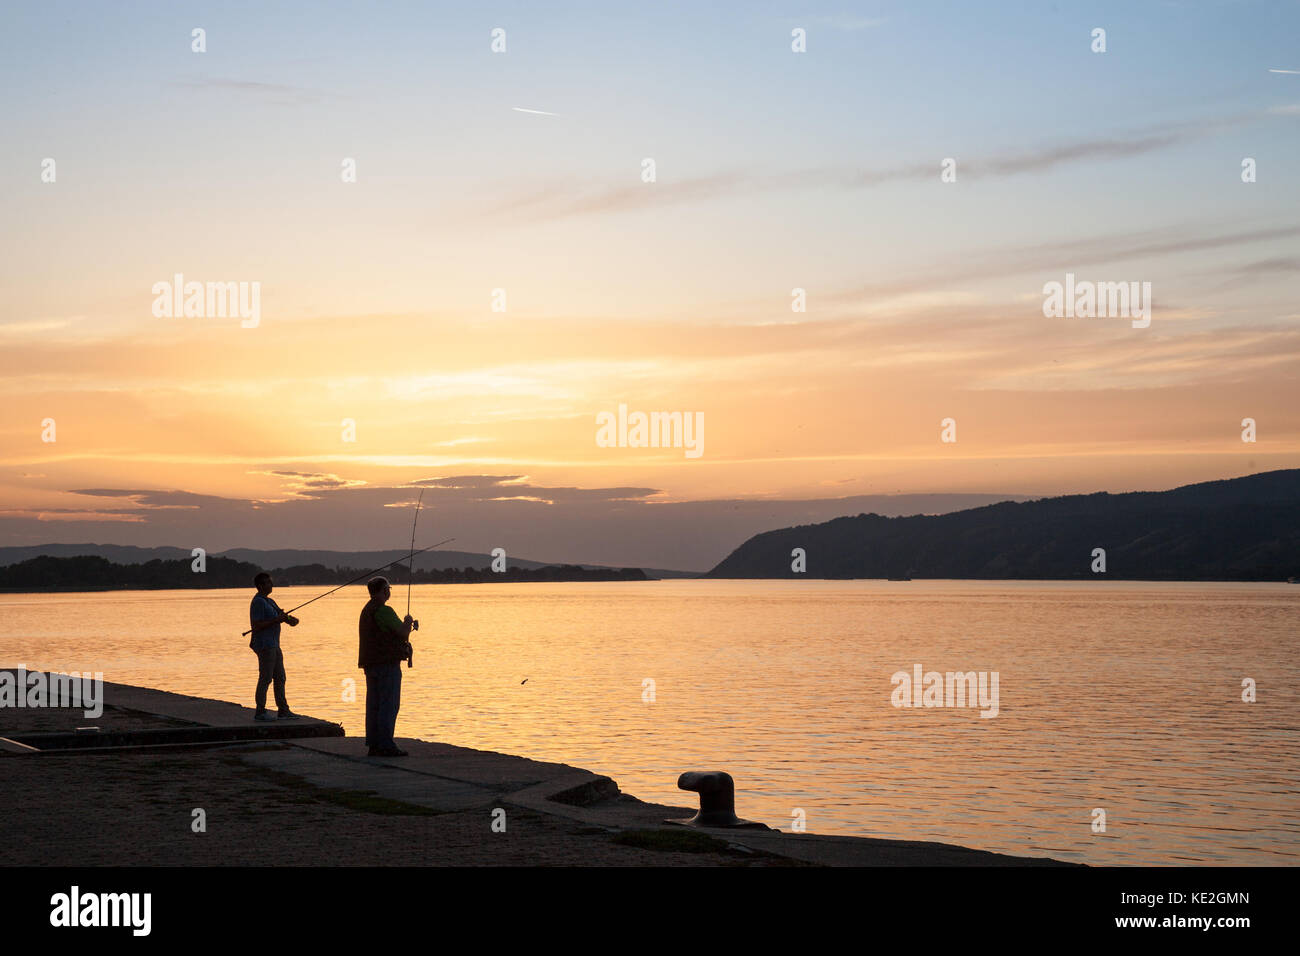 VELIKO GRADISTE, SERBIA - SEPTEMBER 16, 2017: Fishermen fishing on the quay of Veliko Gradiste at Sunset on the - Stock Image